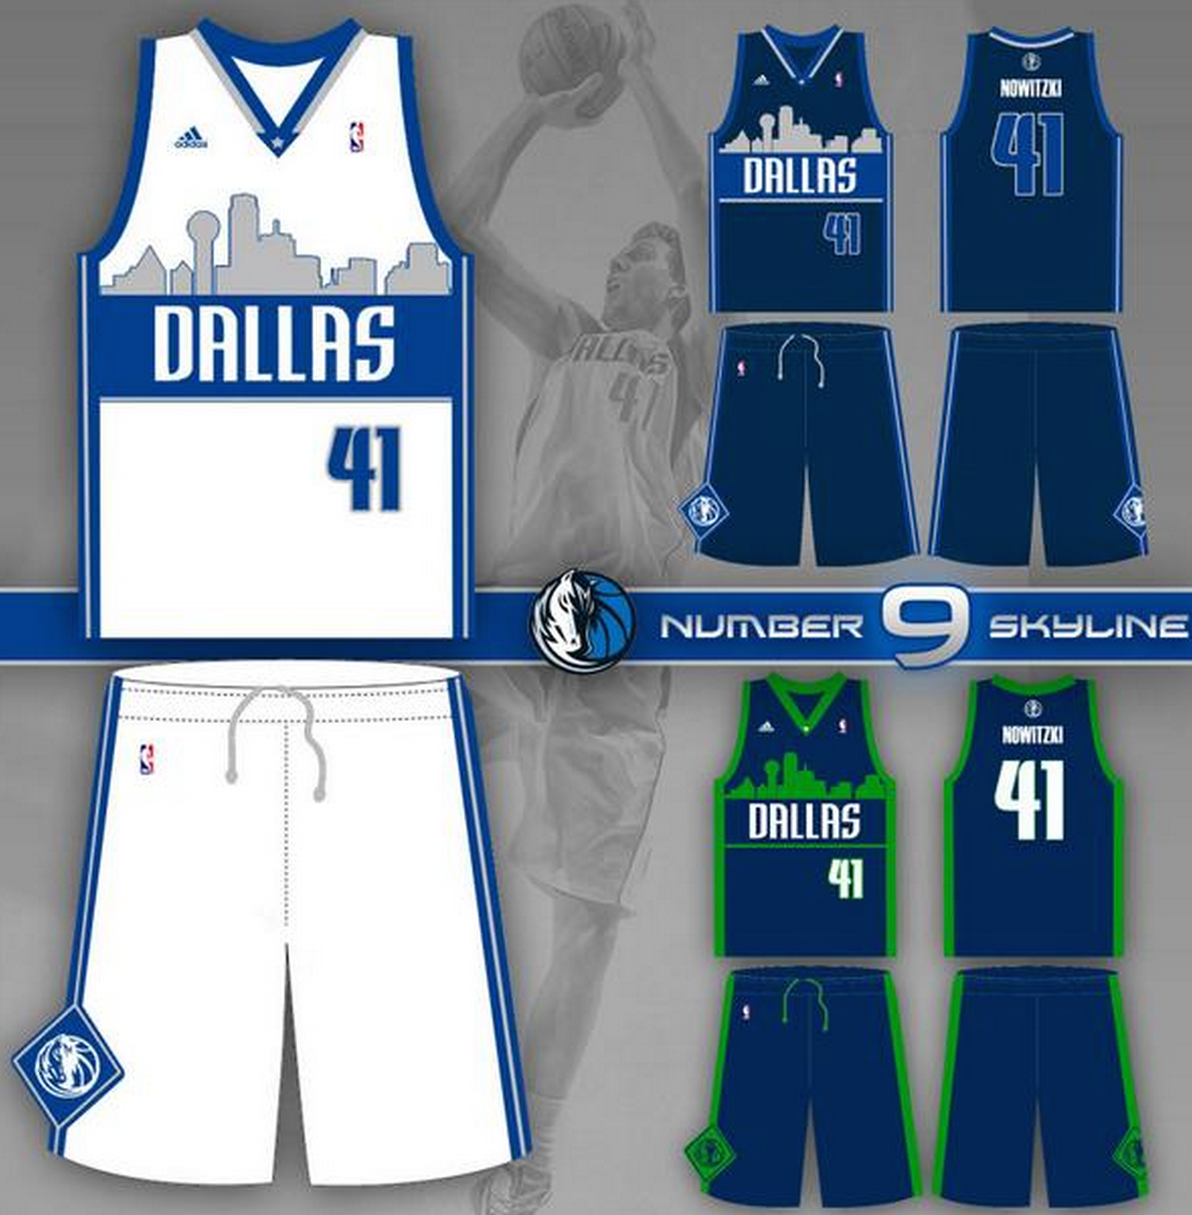 Mavs new jersey, mavs crowdsourced jersey